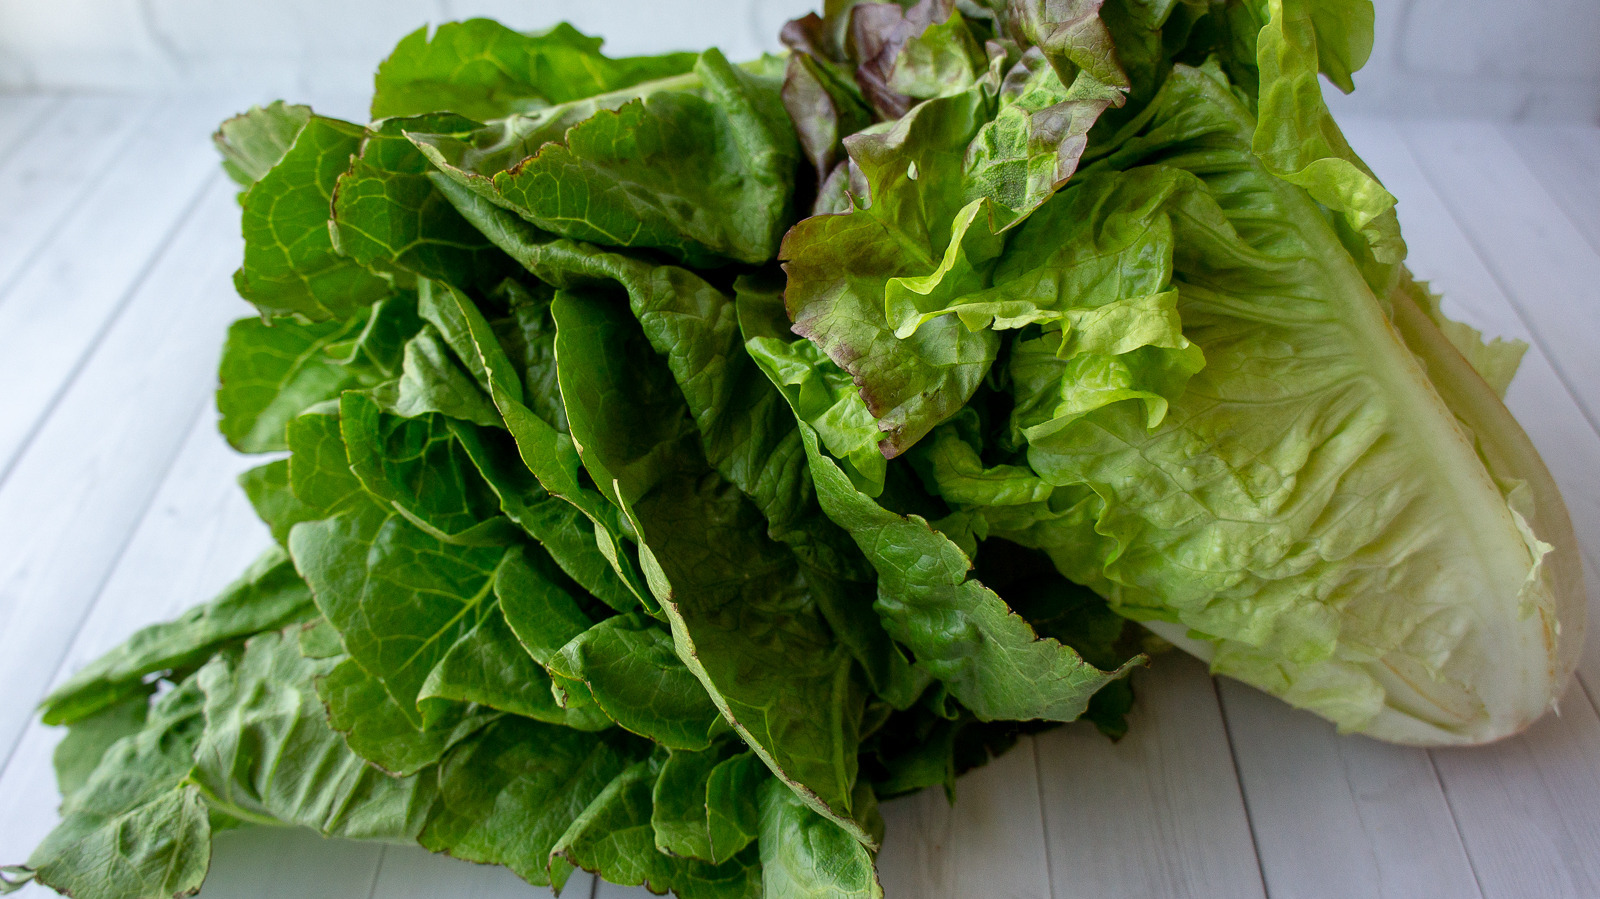 How To Wash Lettuce